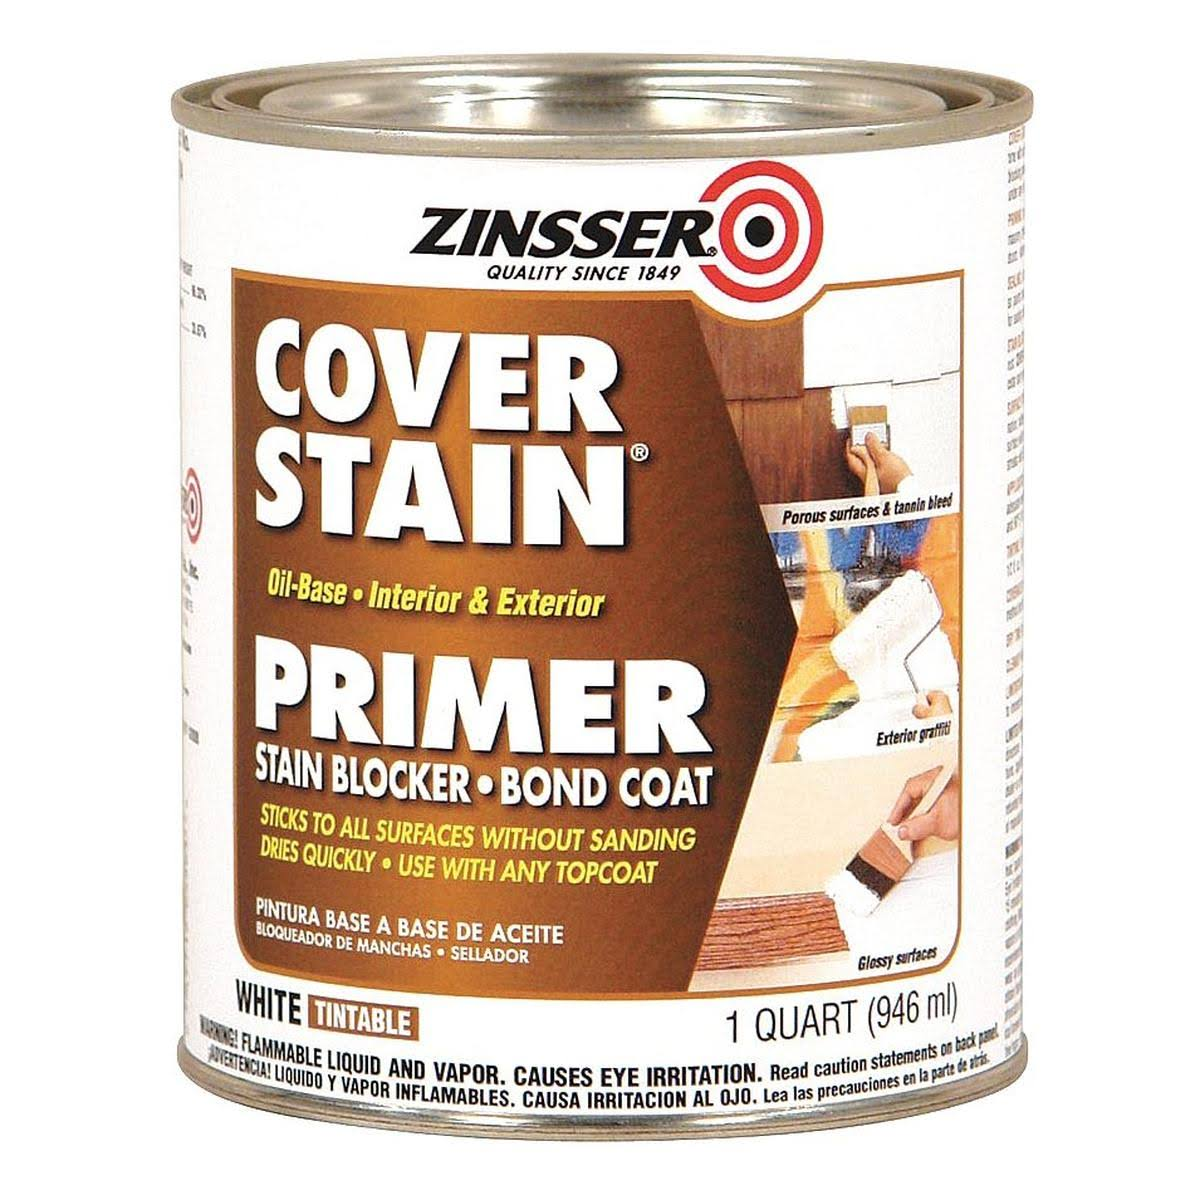 Zinsser Cover Stain Oil Base Primer - White